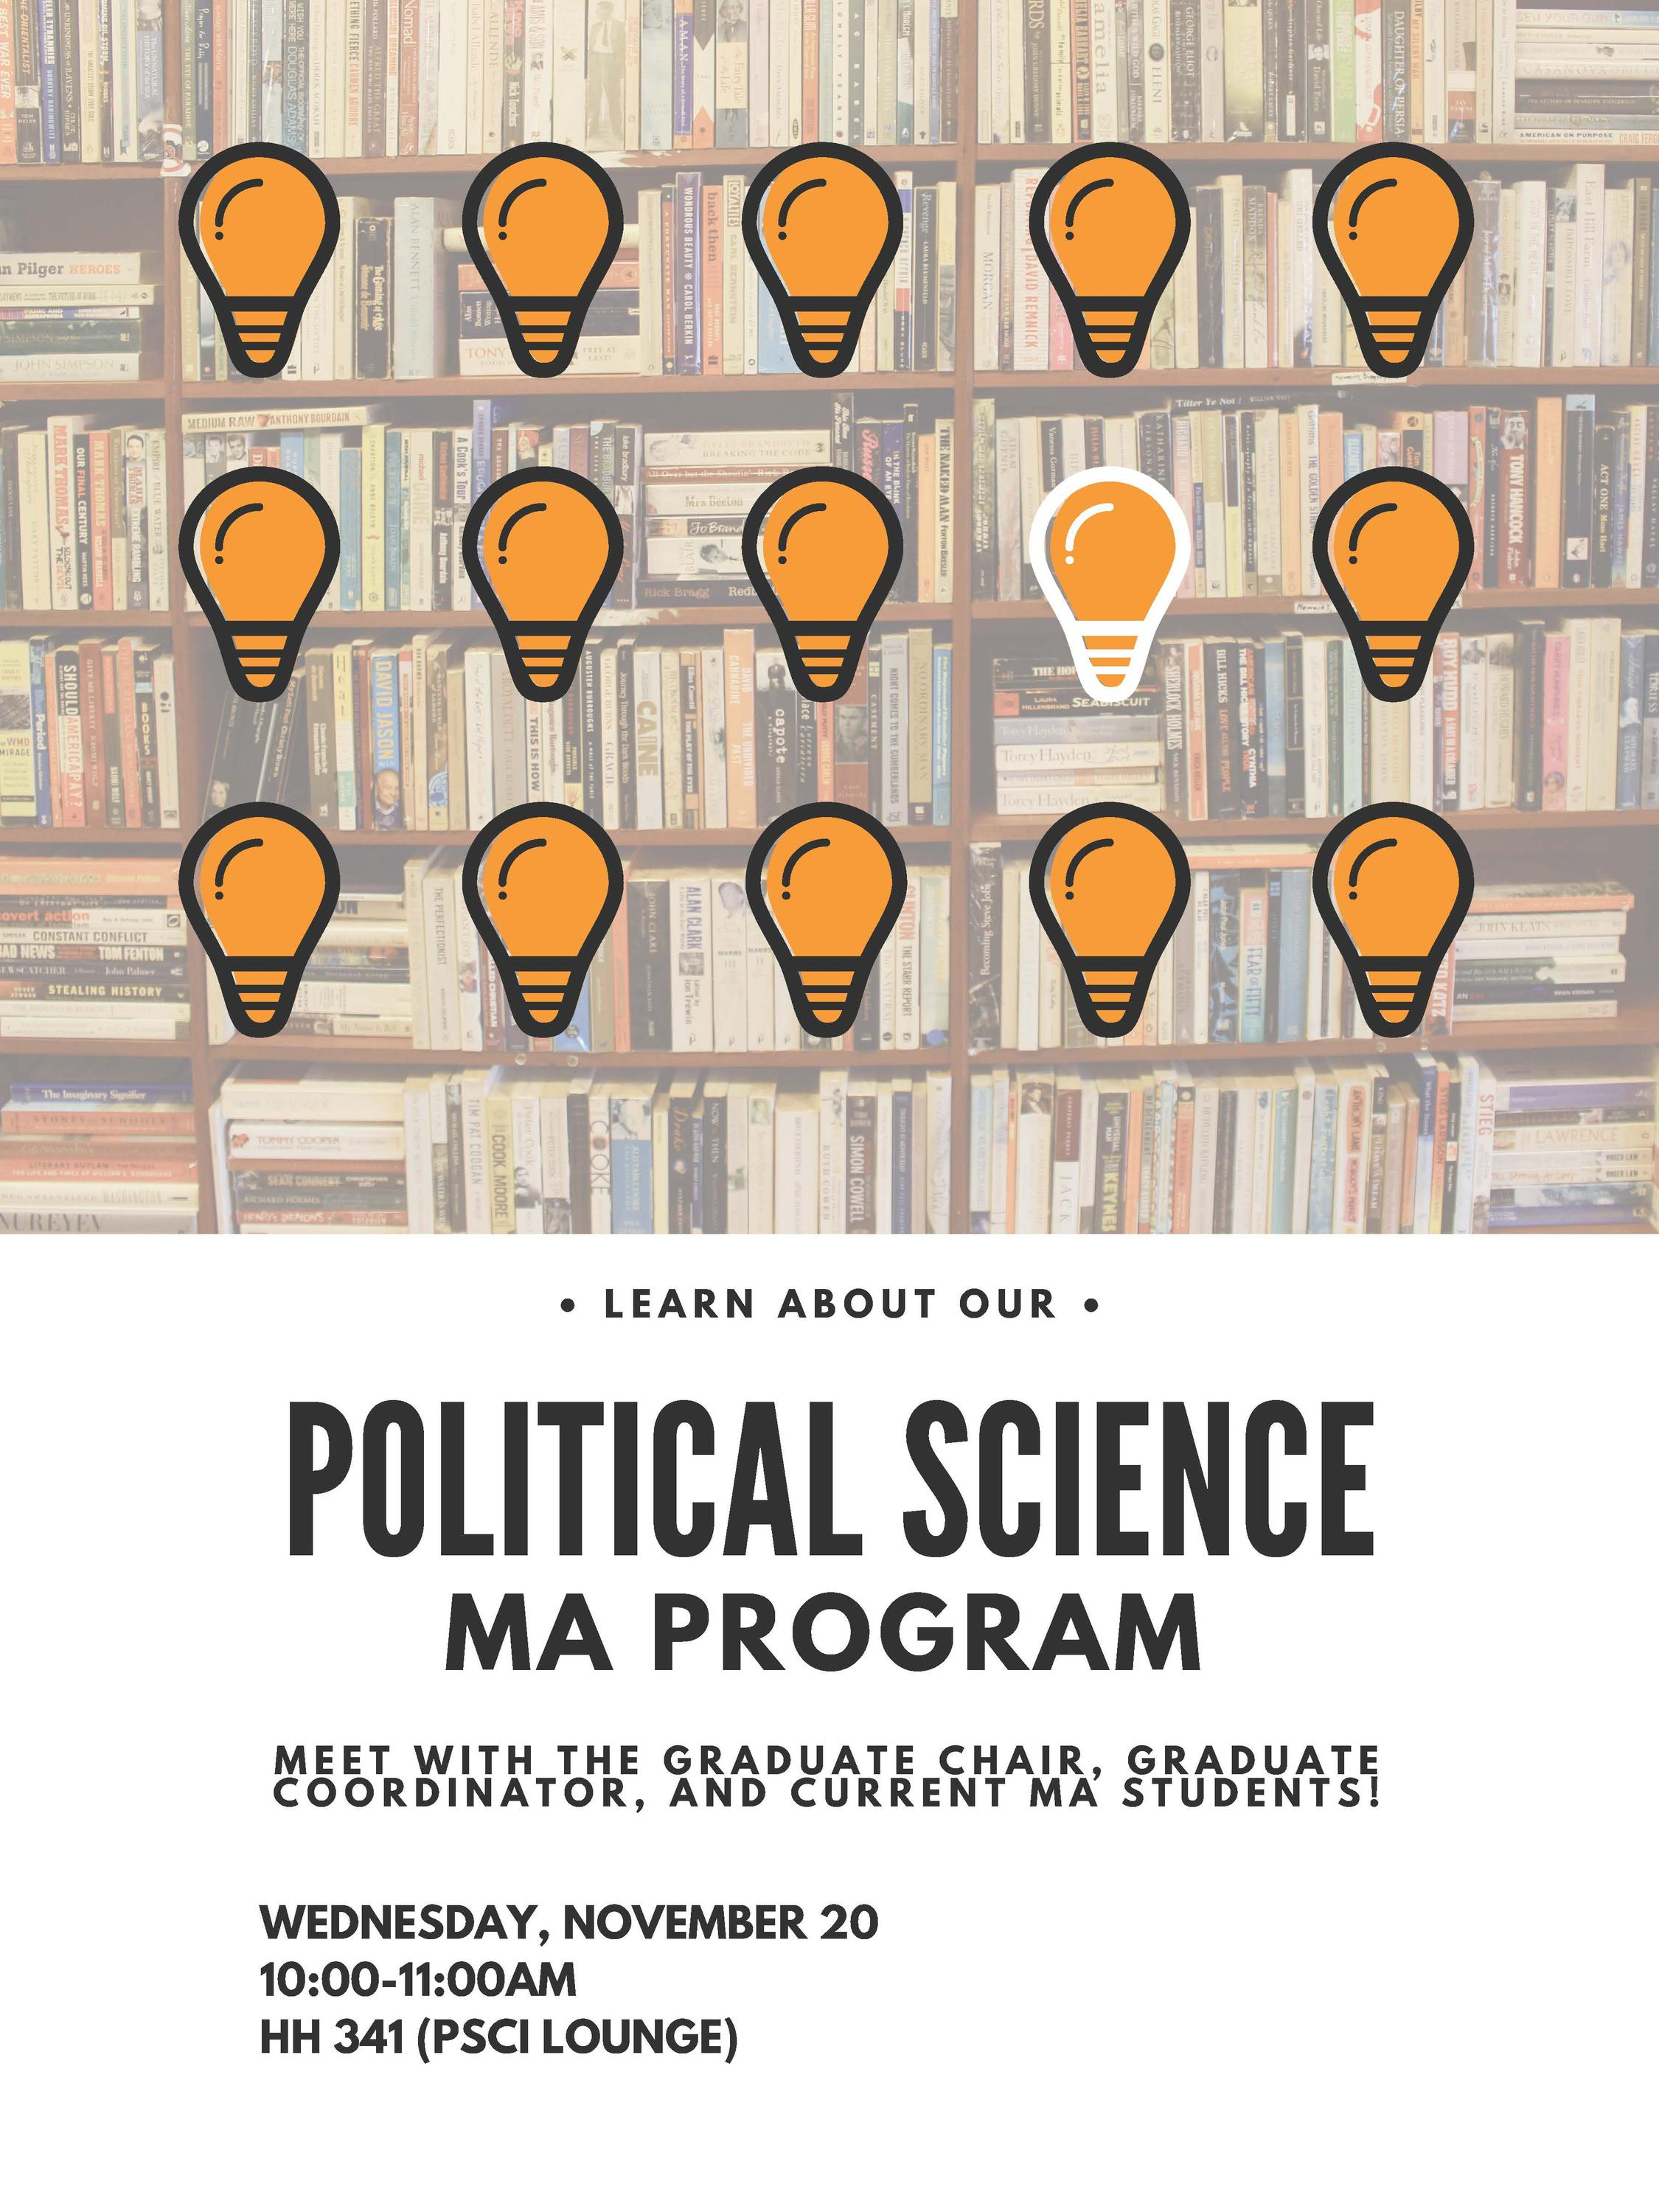 graphic poster advertising MA information session